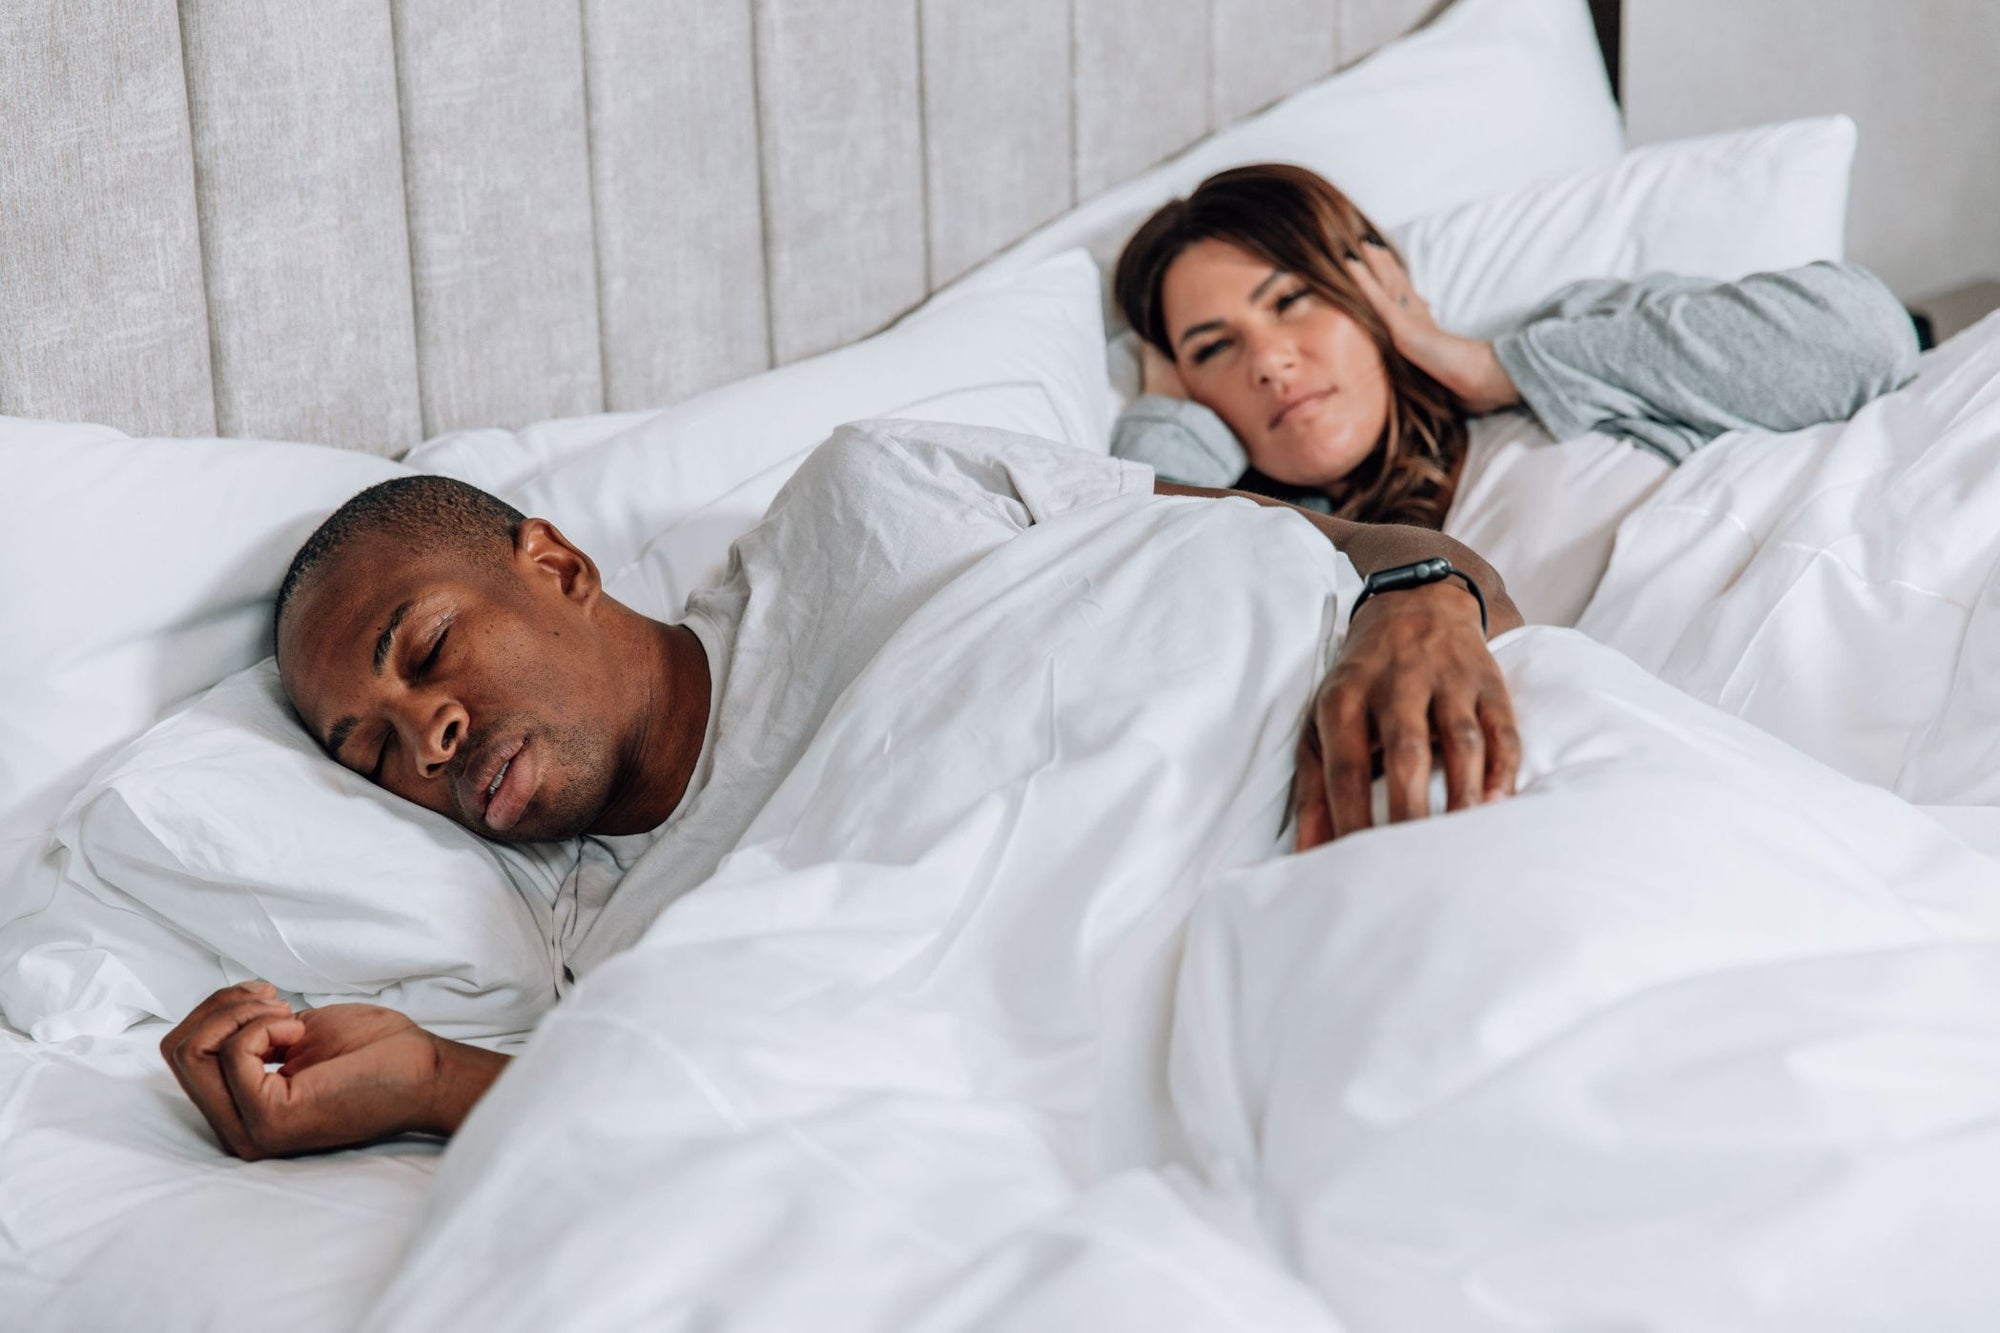 Can't sleep? What to Do if Your Partner Snores